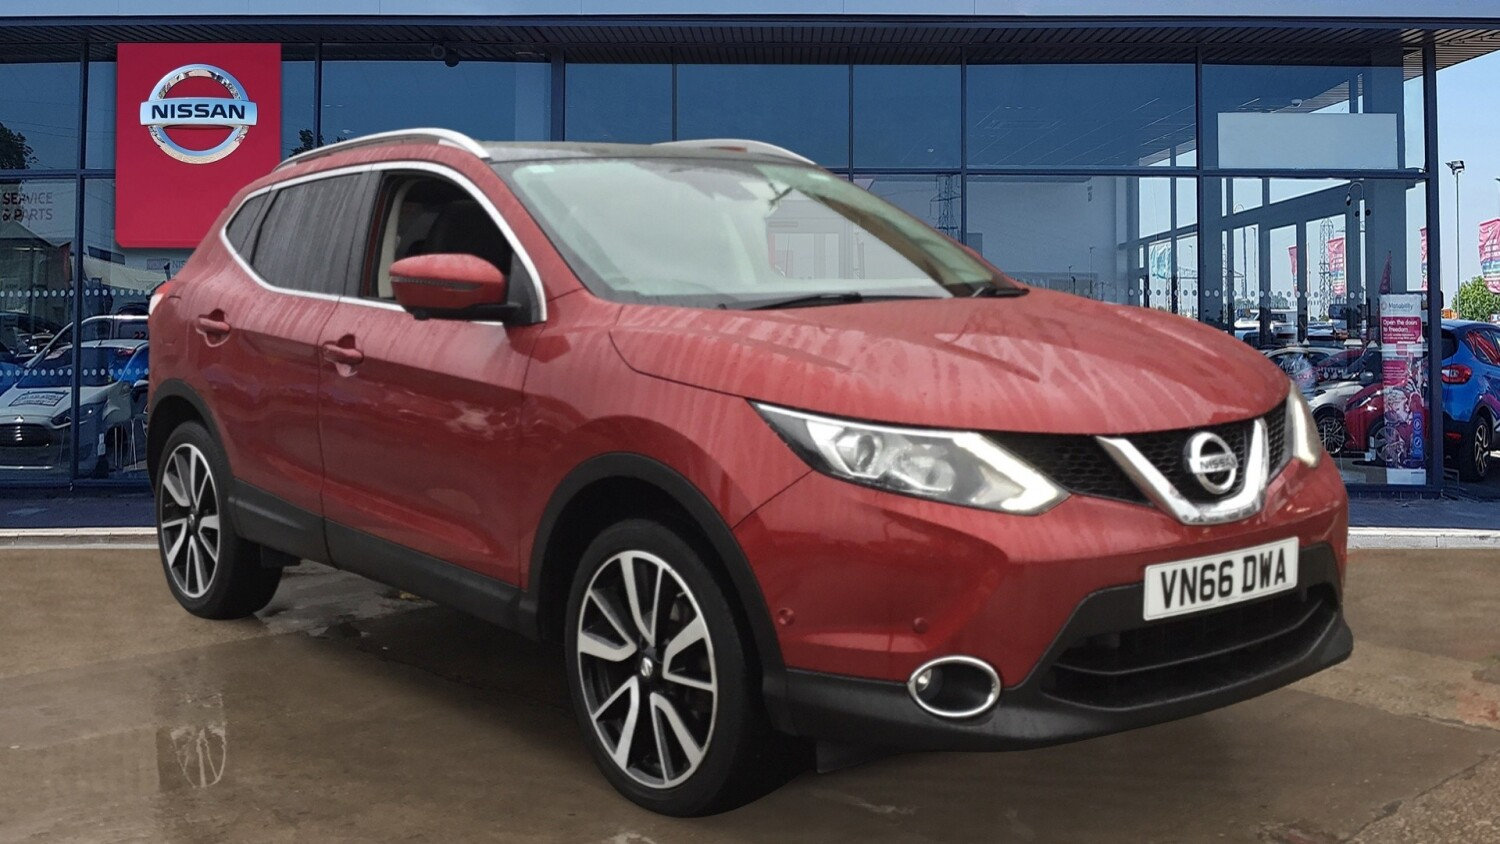 buy online nissan qashqai 1 5 dci tekna 5dr diesel hatchback for sale bristol street motors. Black Bedroom Furniture Sets. Home Design Ideas